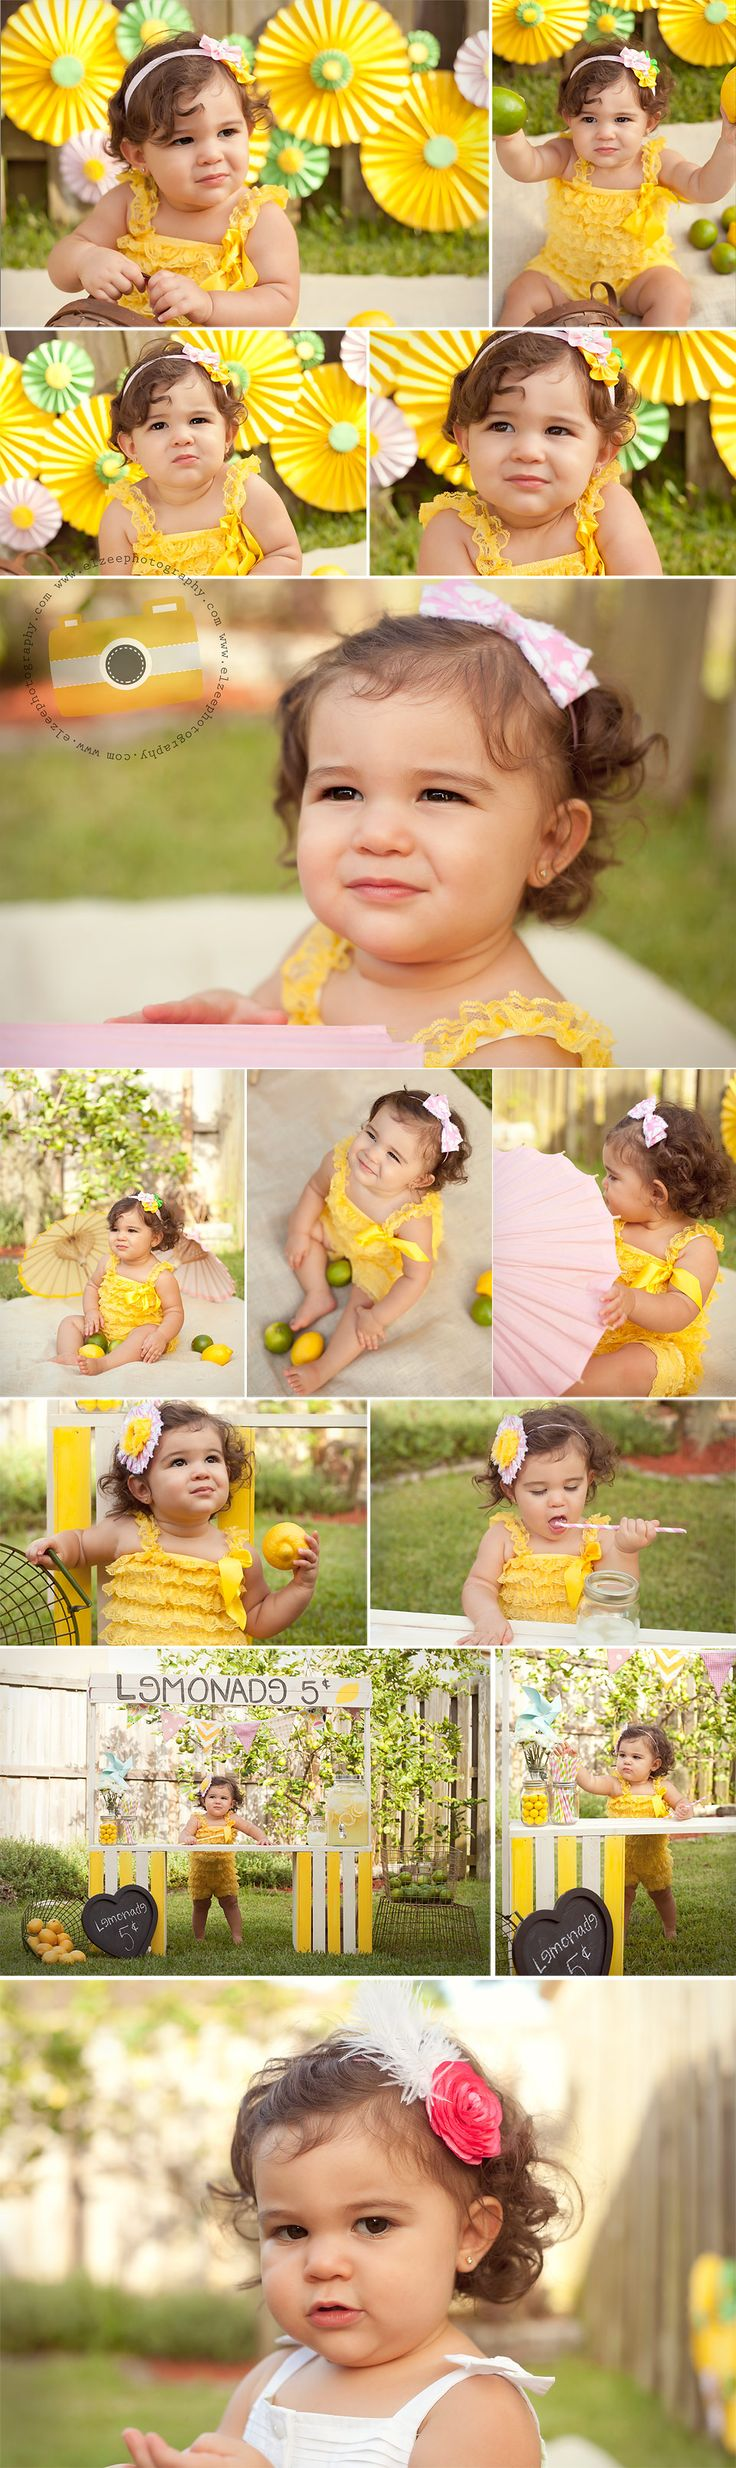 Lemonade Stand Mini Session Bianca | Miami Child Photographer, Photography